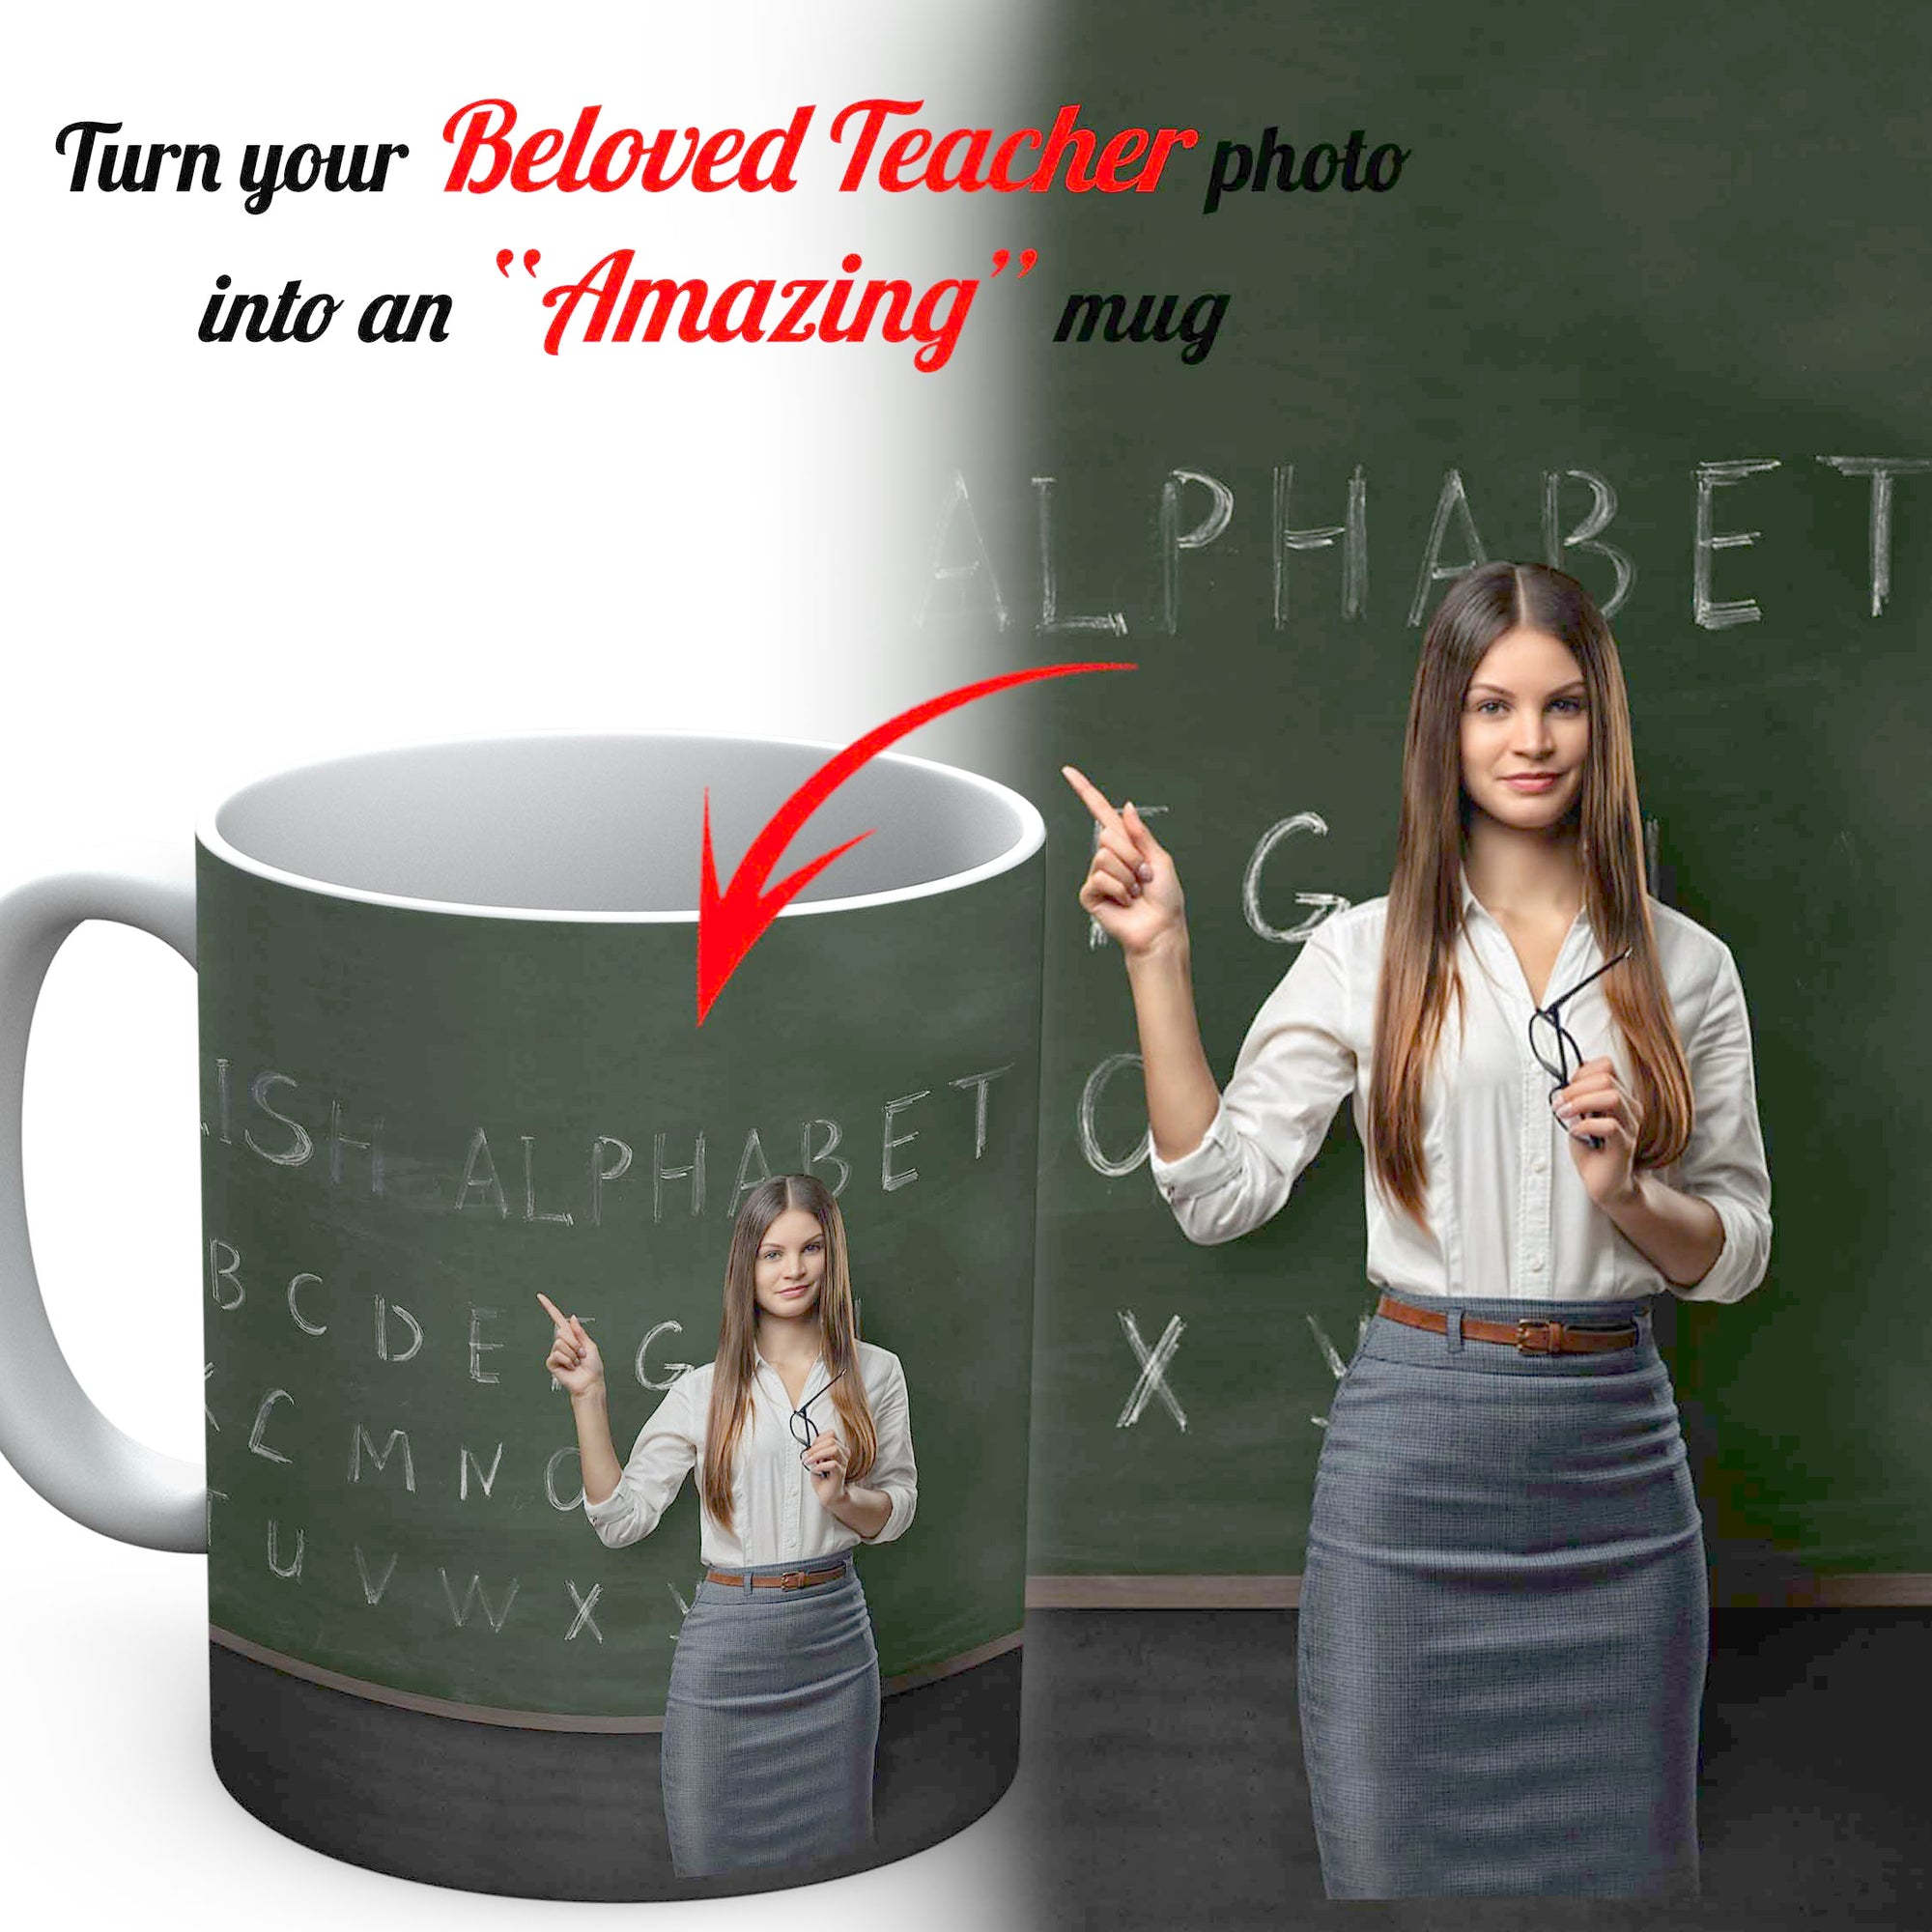 PERSONALIZED mug - upload your beloved teacher photos